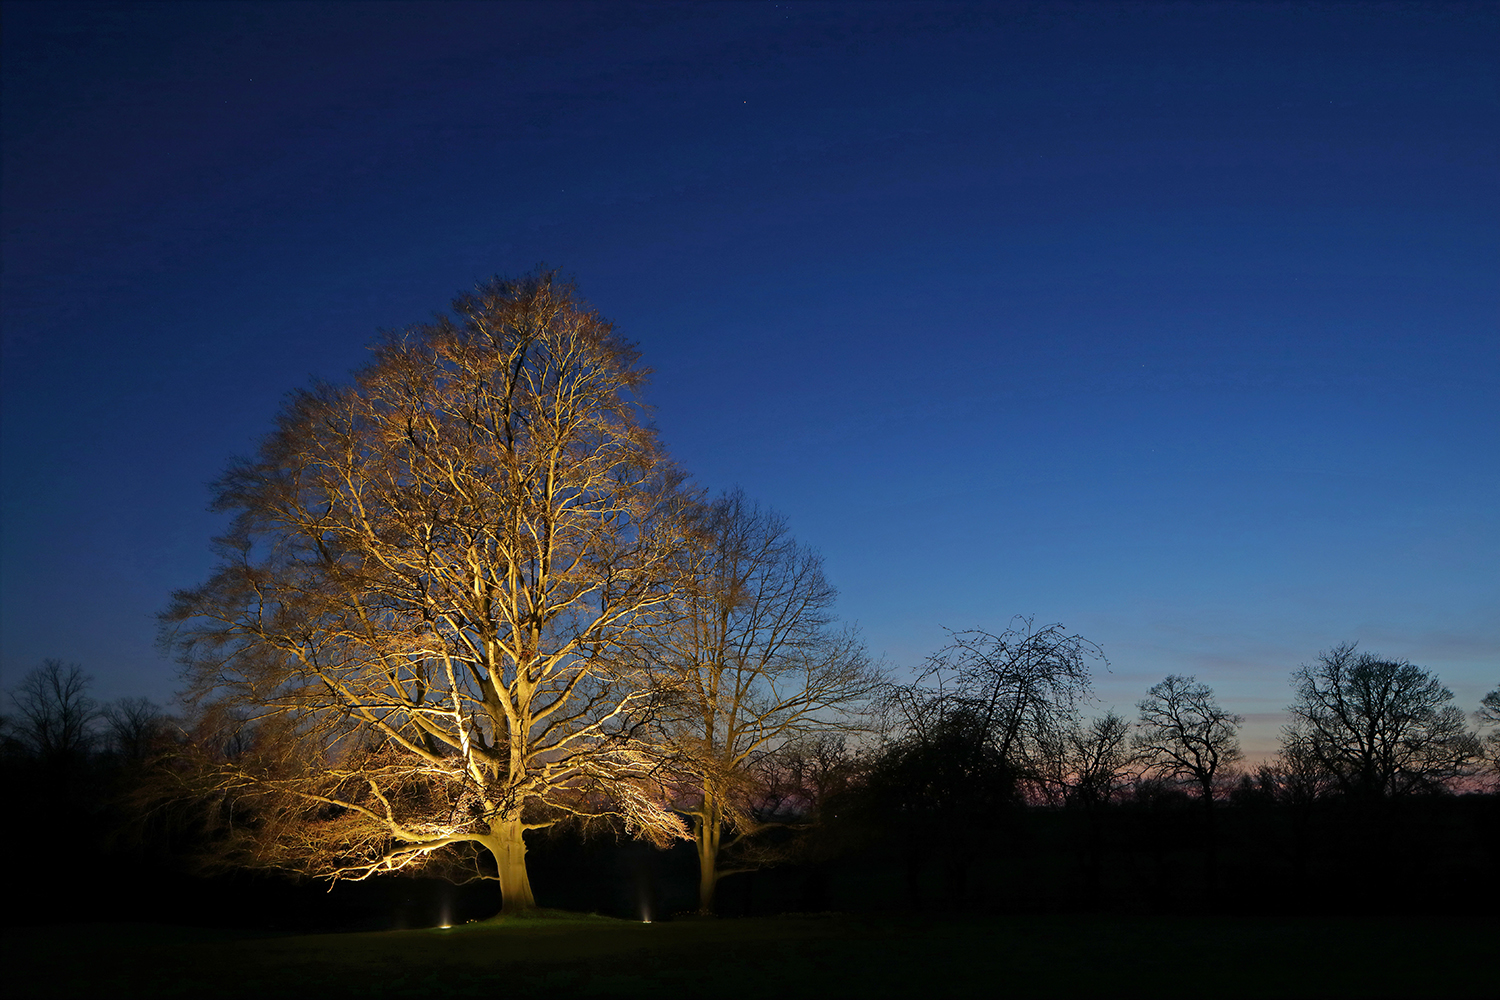 Uplight to large tree in garden